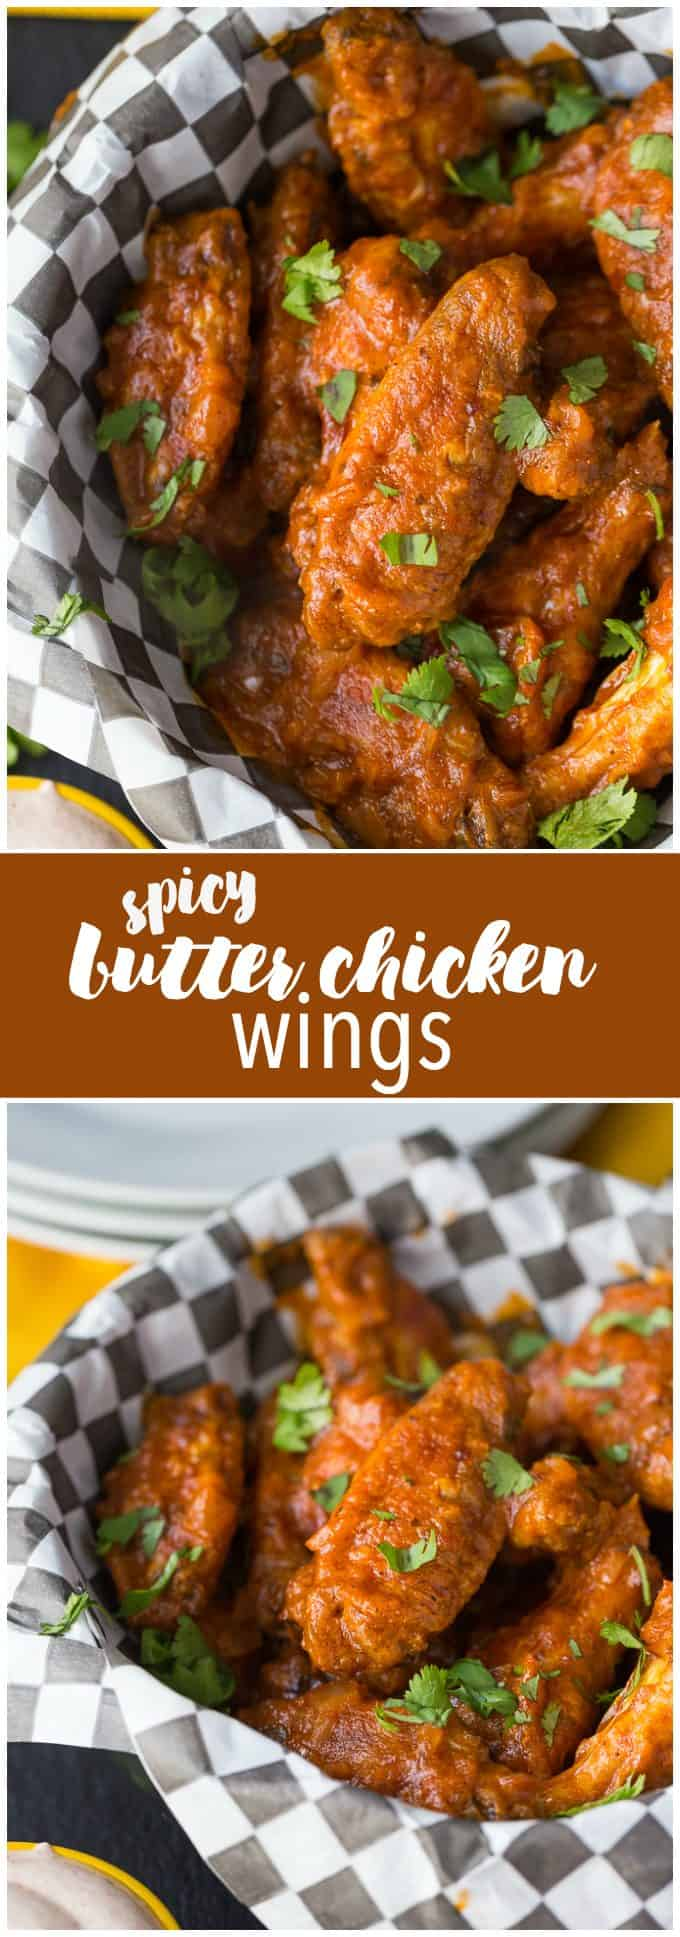 Spicy Butter Chicken Wings - Take your tailgate to India! These game day treats pack a little heat and a ton of flavor with a delicious dipping sauce.